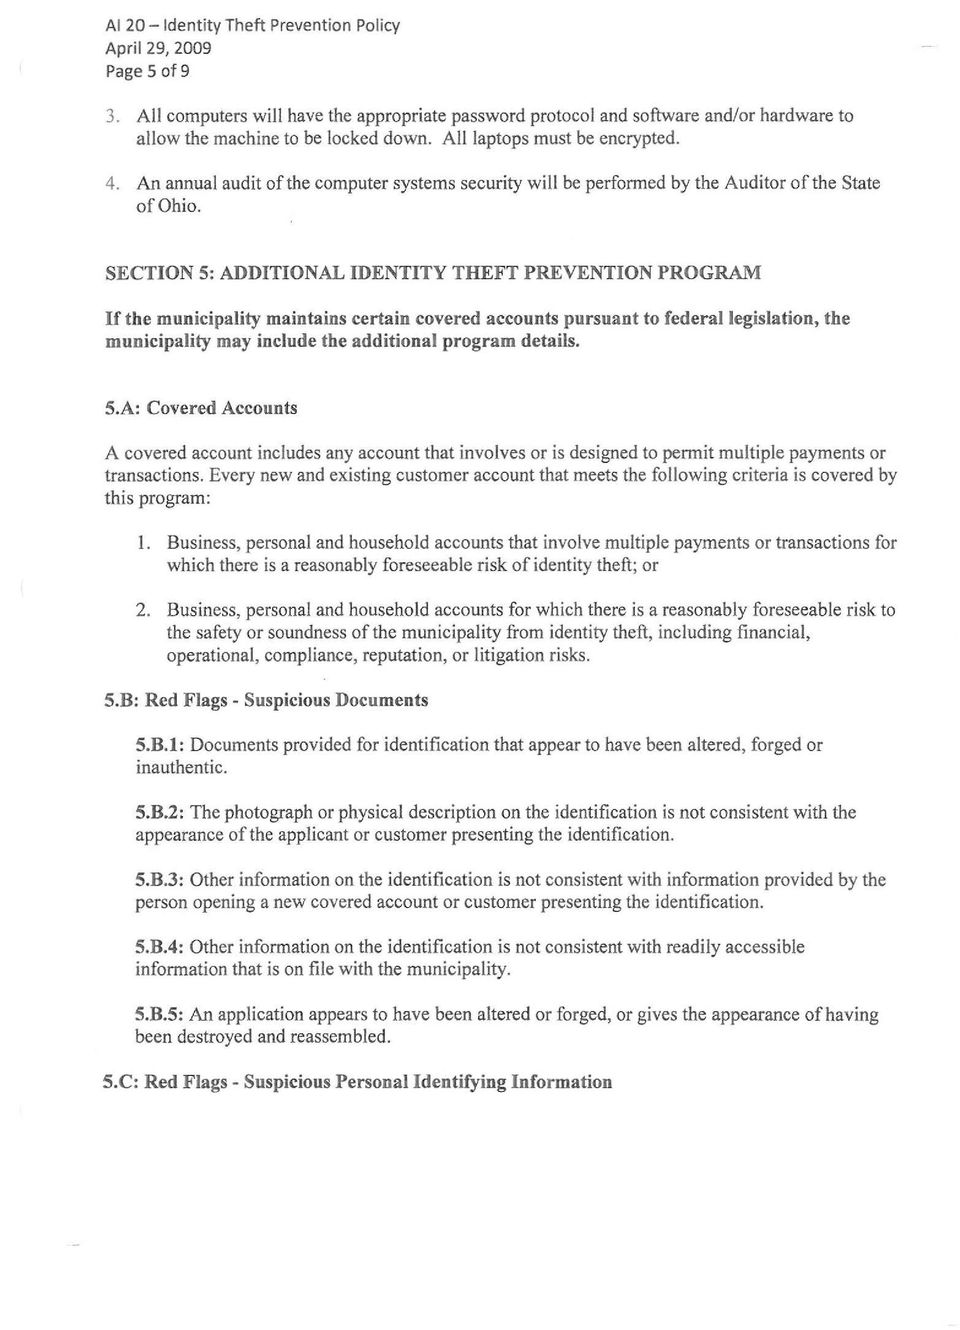 SECTION 5: ADDITIONAL IDENTITY THEFT PREVENTION PROGRAM If the municipality maintains certain covered accounts pursuant to federal legislation, the municipality may include the additional program